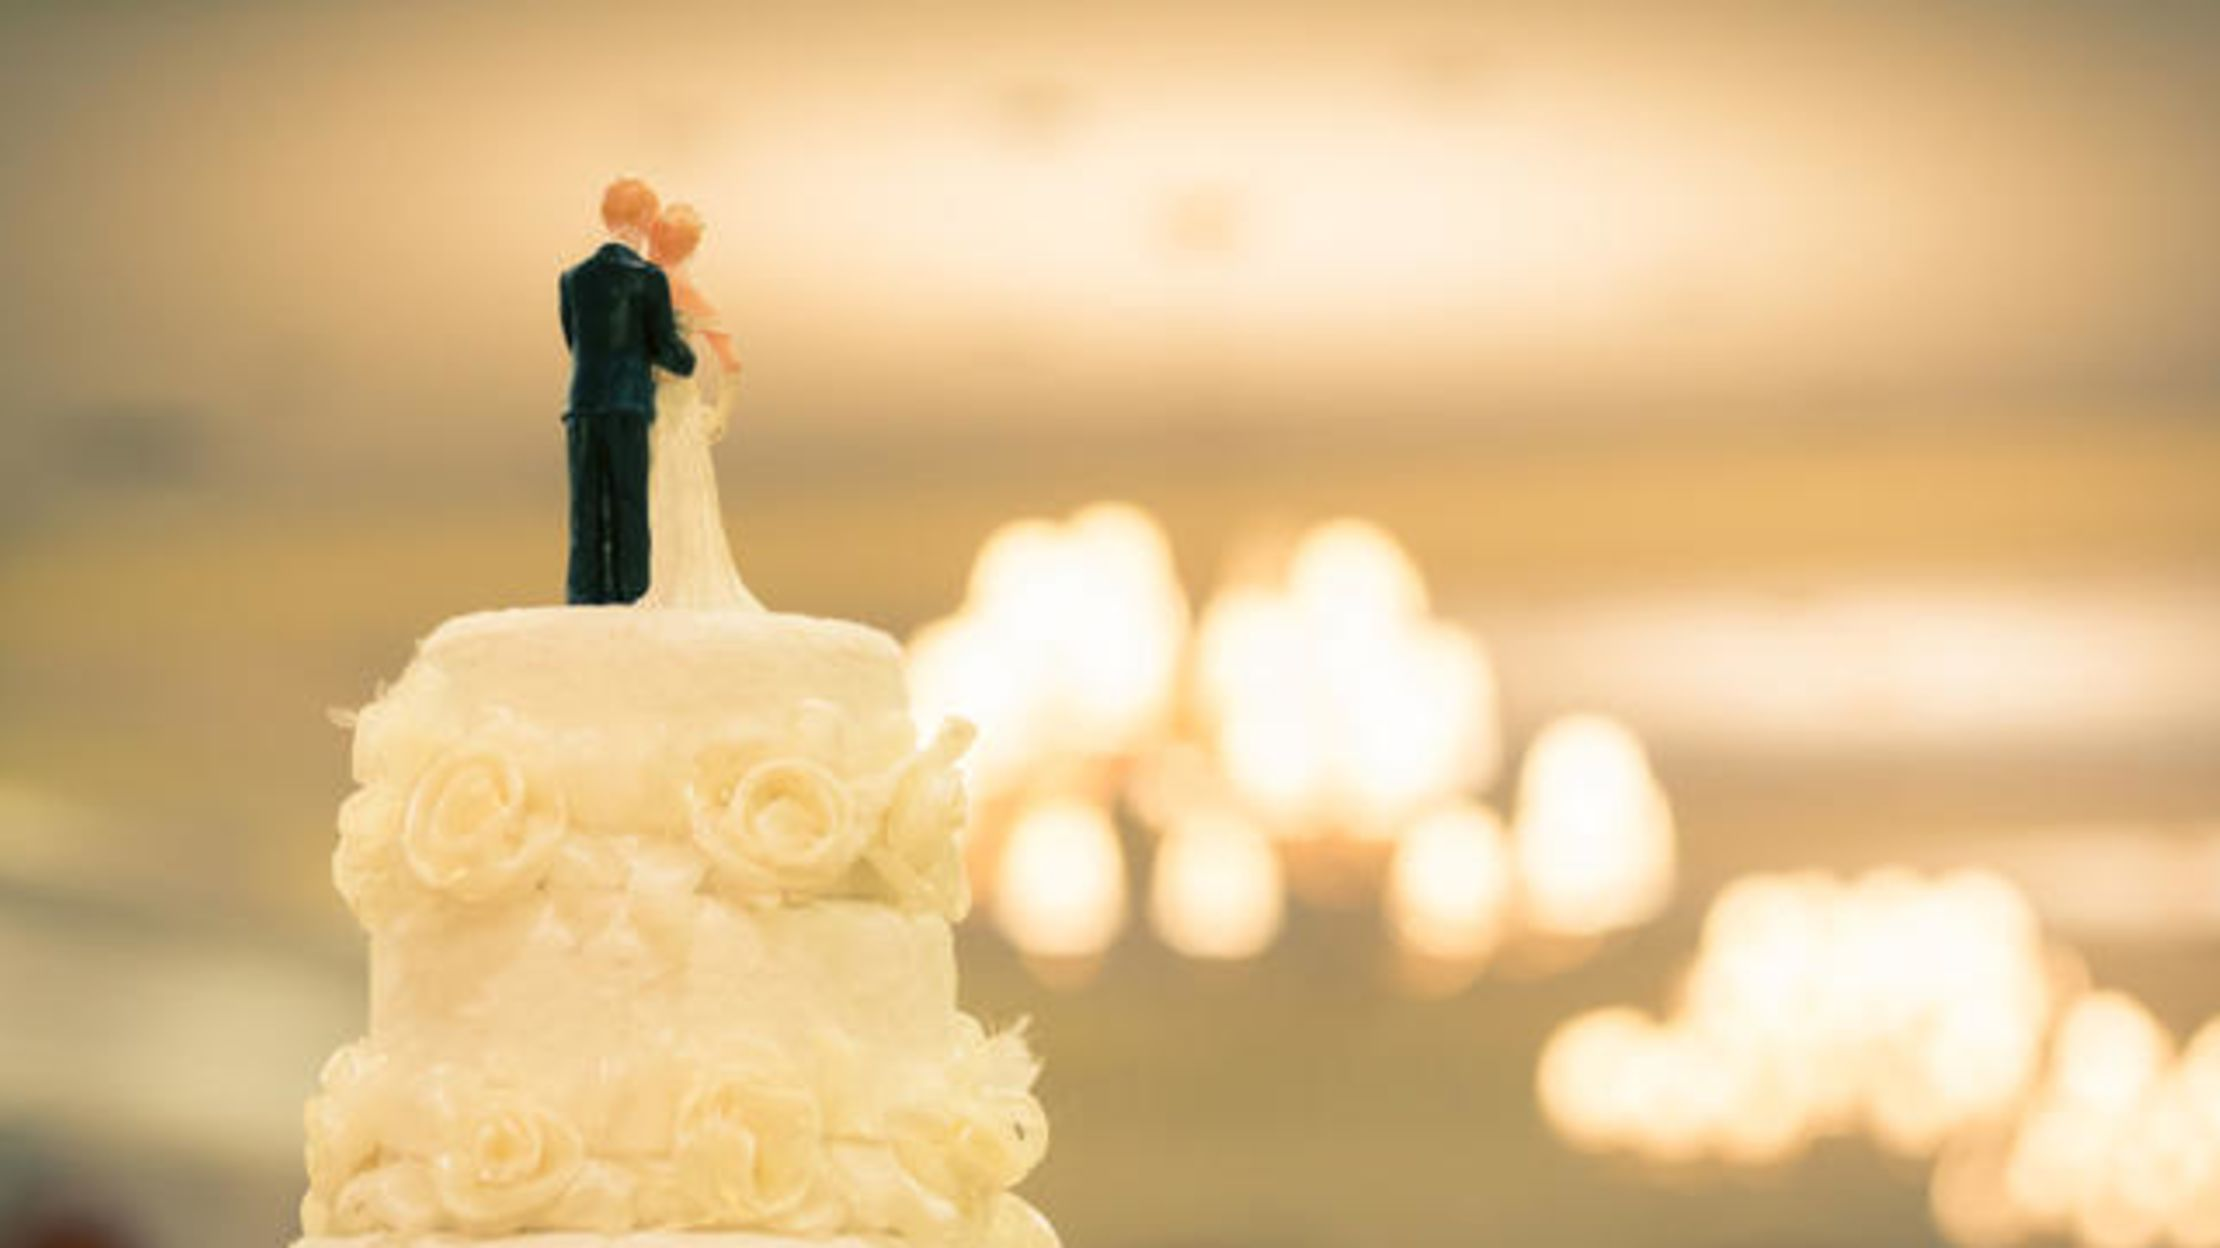 Wedding Reception Songs.Here Are Most Popular Wedding Reception Songs And Artists Mental Floss